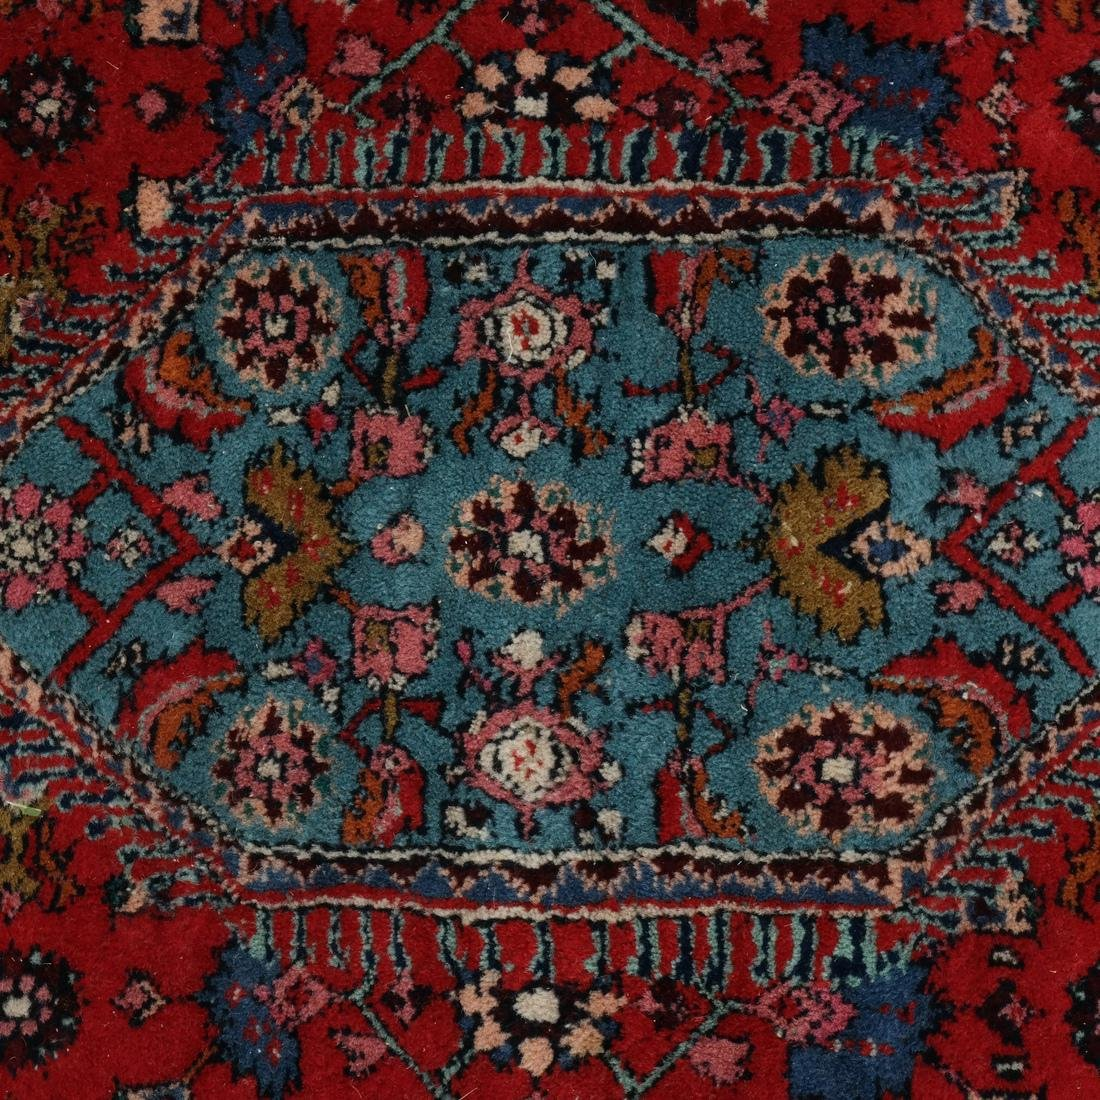 Persian-Style Decorated Rug - 4